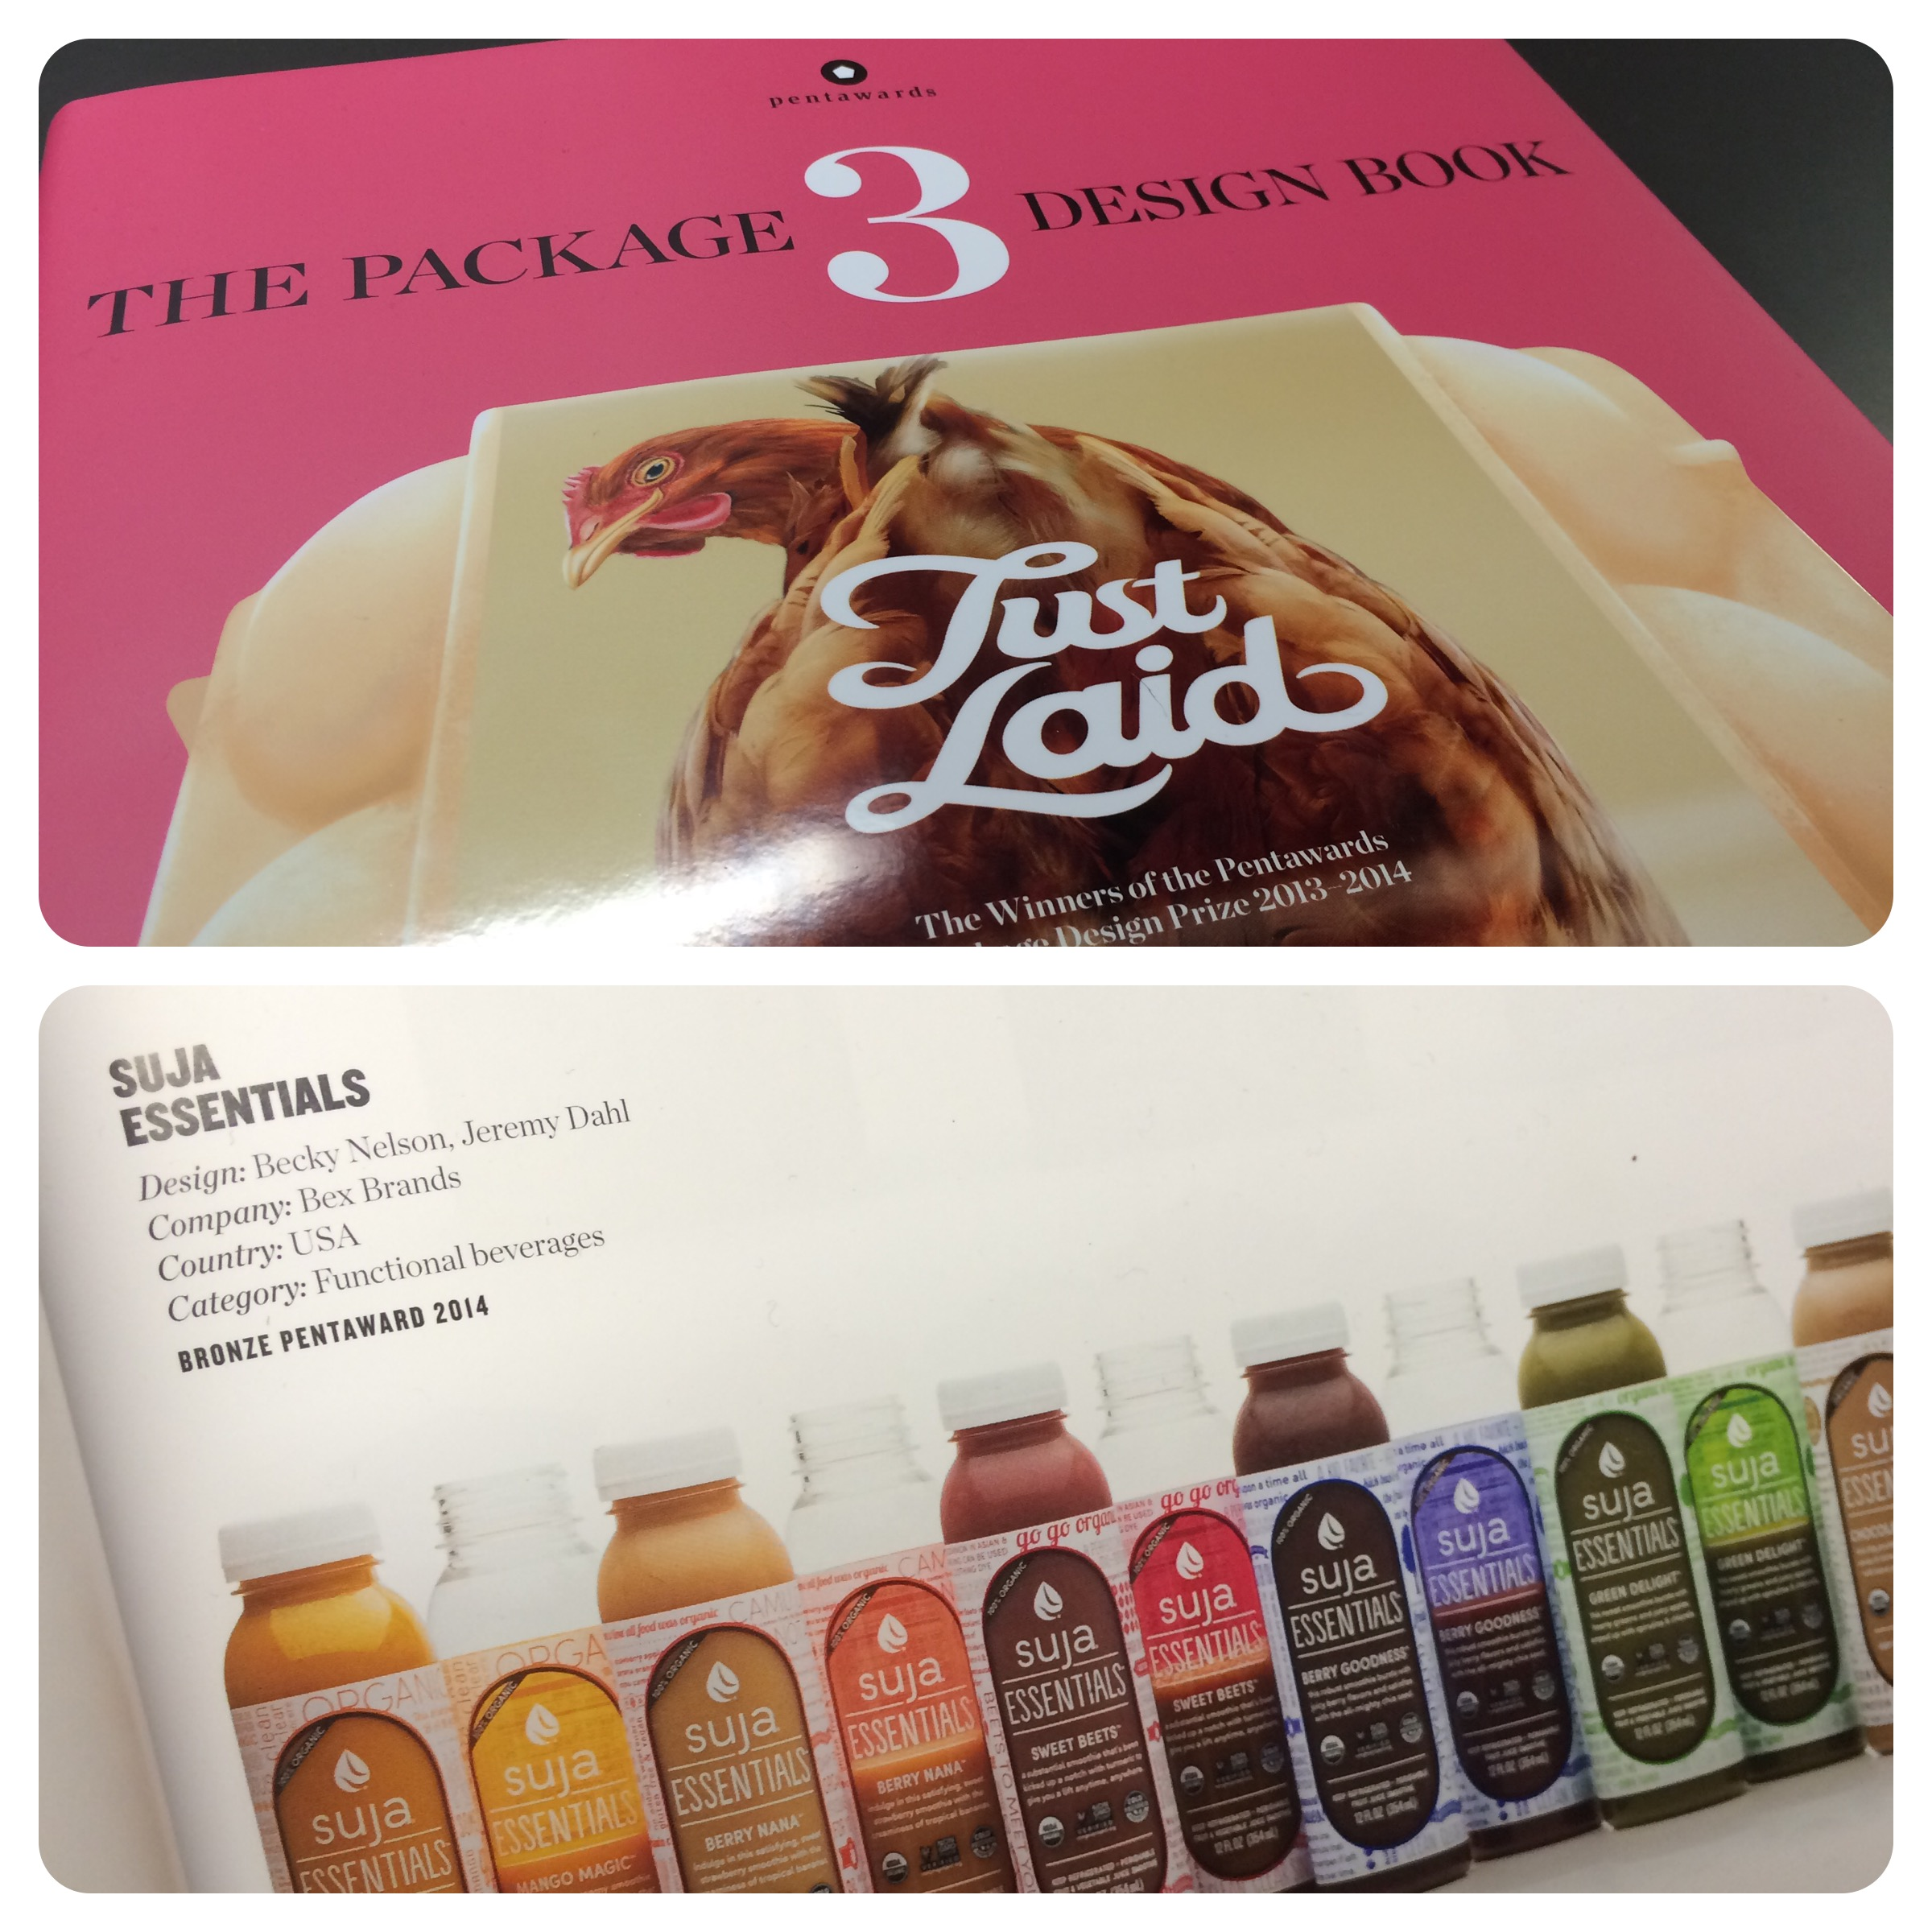 Thrilled to have Suja Essentials included as part of The Packaging Design Book 3